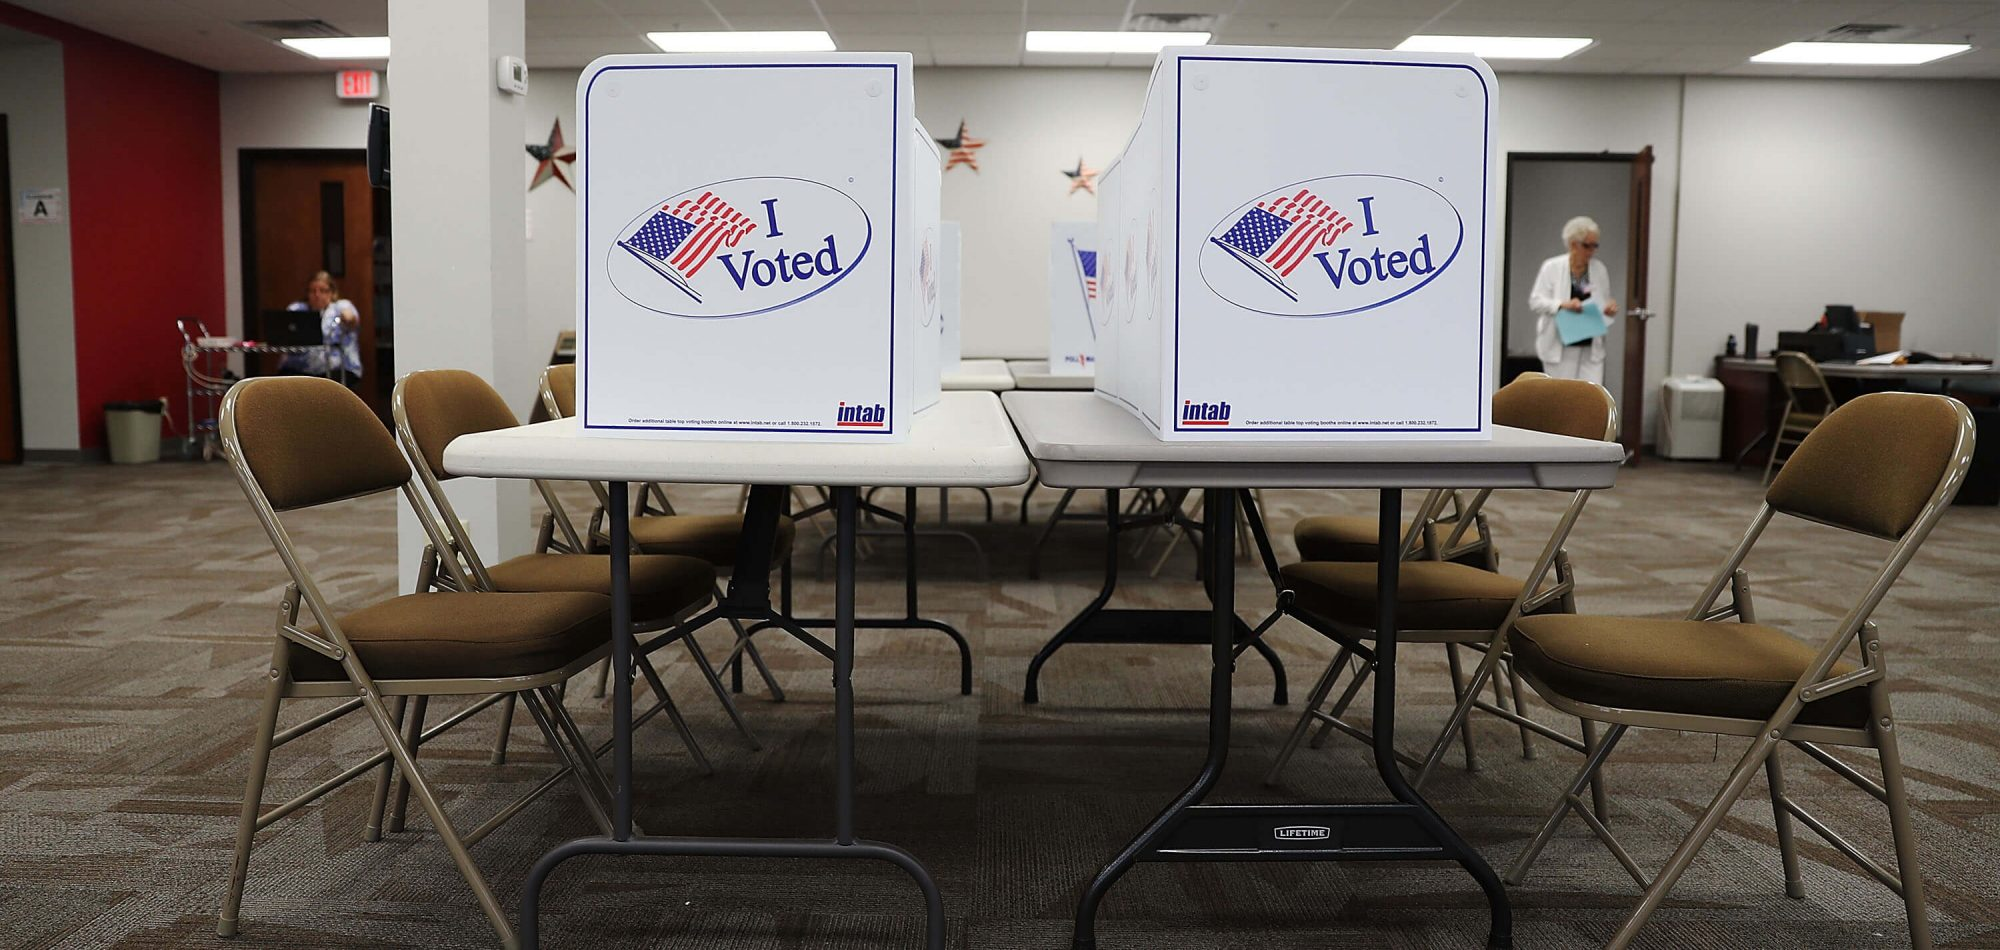 When Does Early Voting Begin? Check the AR Intel Calendar